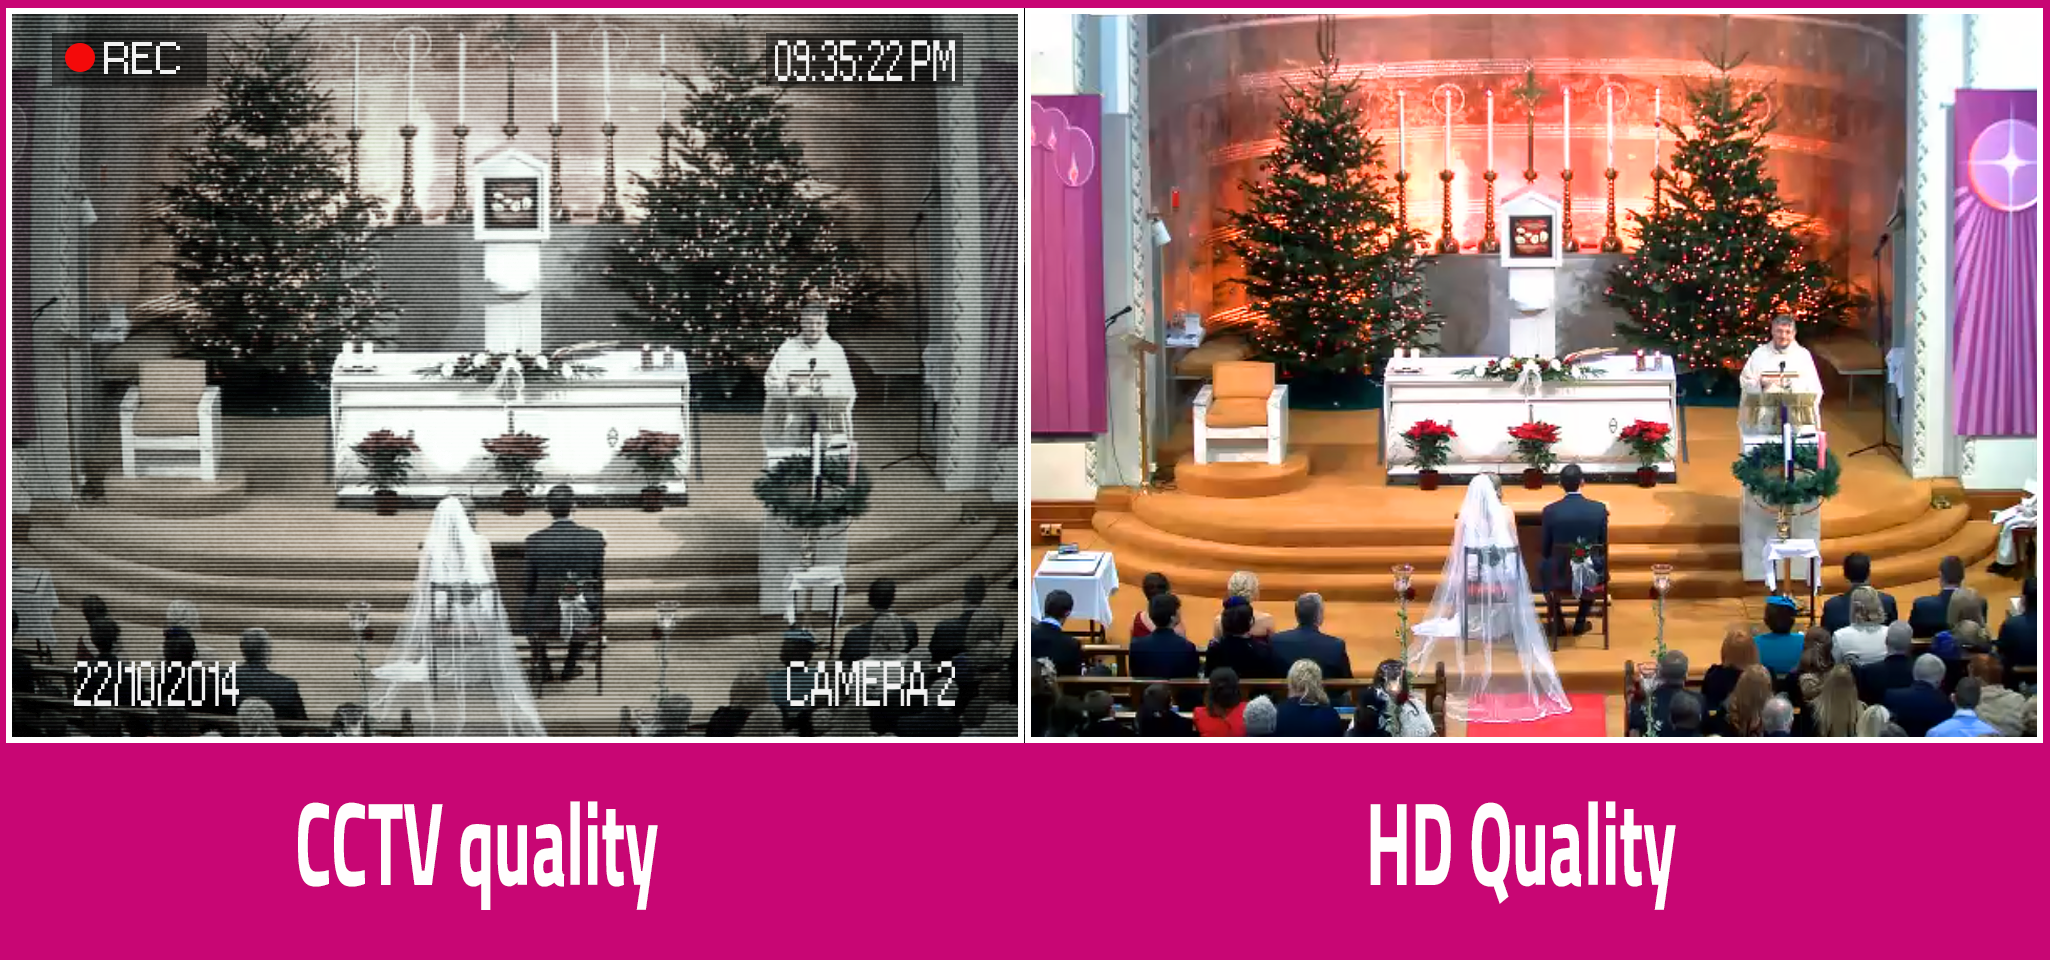 HD Live streaming Church Services